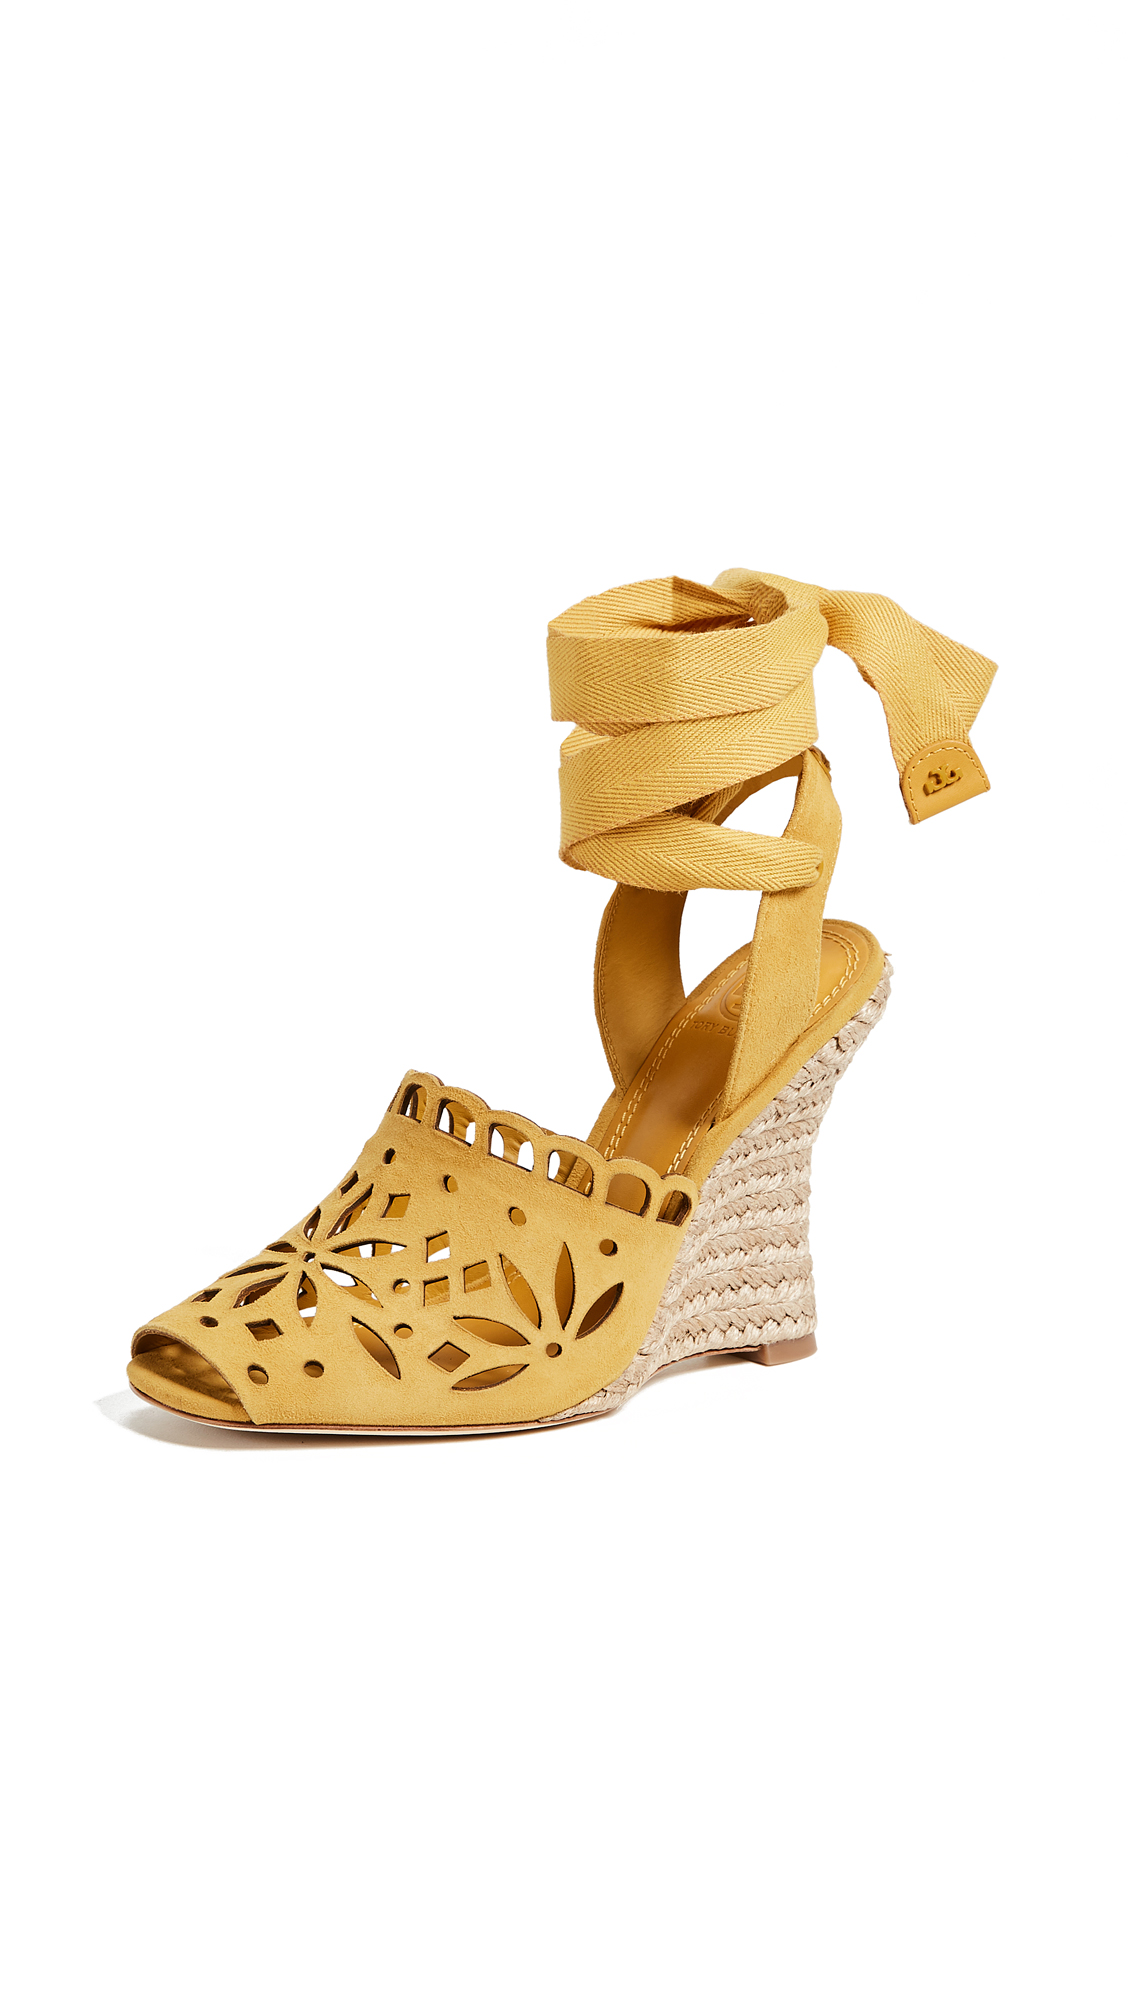 Tory Burch May 110mm Peep Toe Wedge - Dusty Cassia/Dusty Cassia